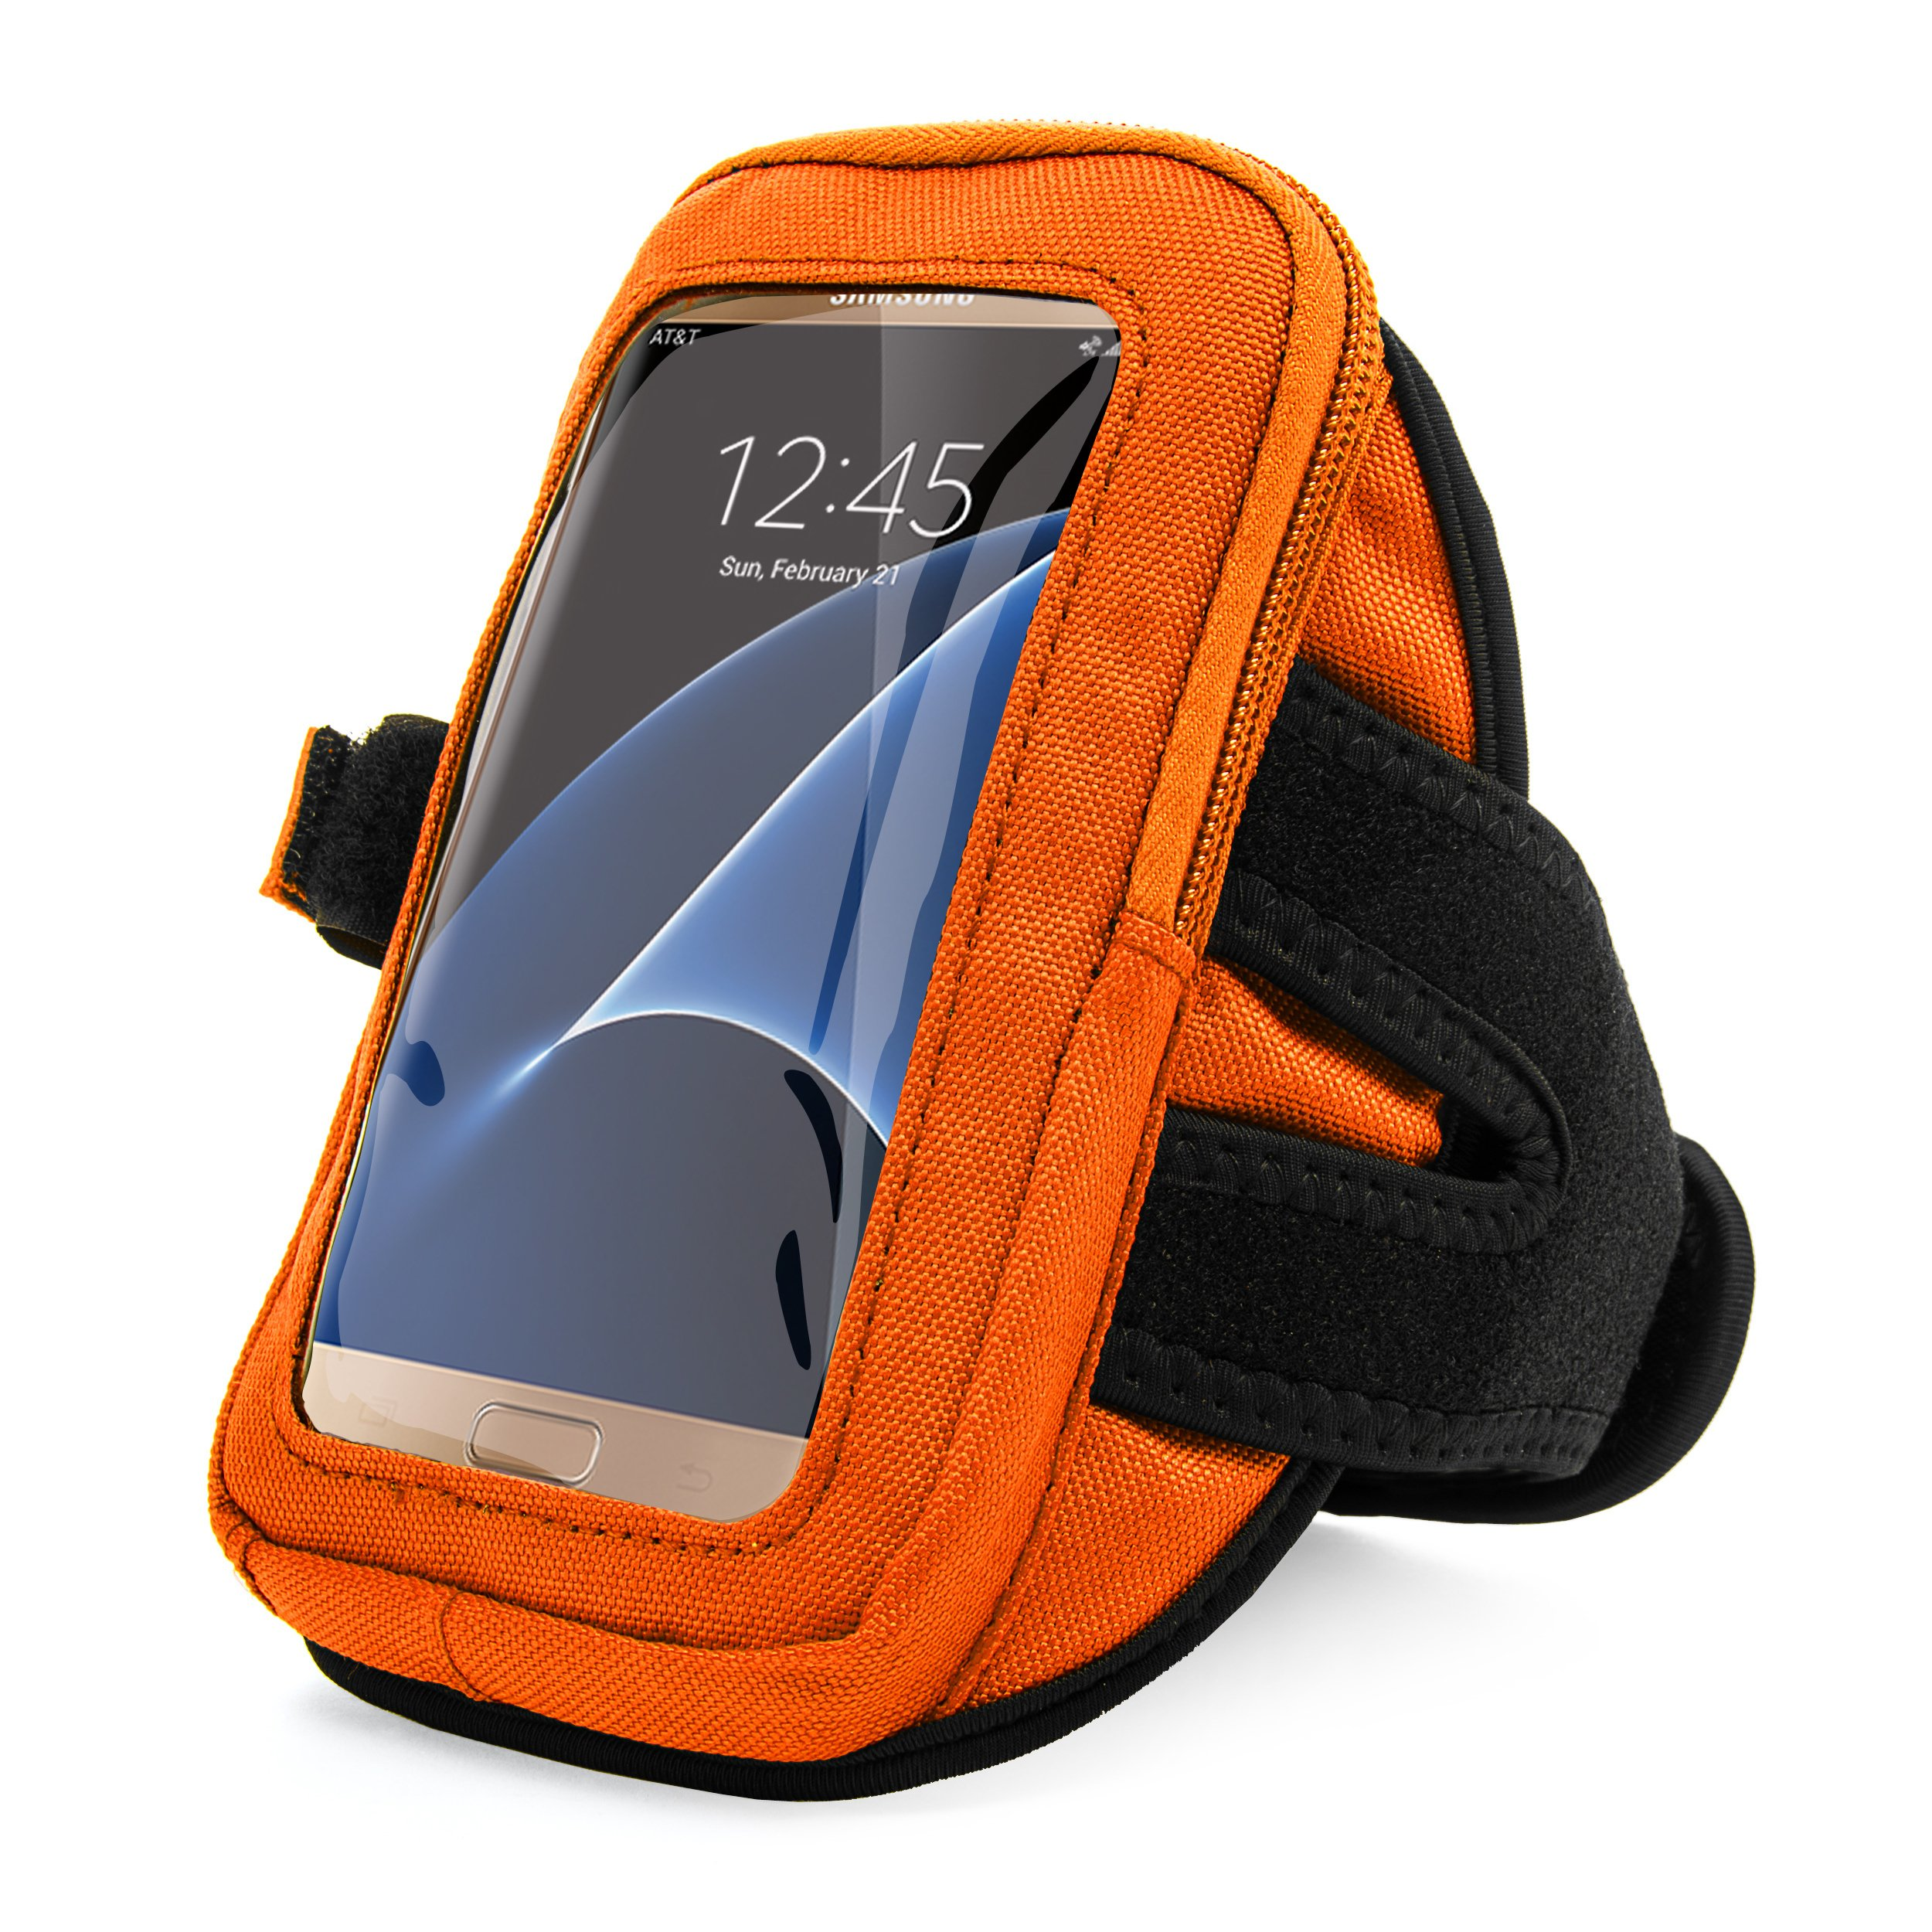 VanGoddy Premium Zippered Sport Case Cover Gym Running Armband with removable Strap for iPhone Samsung LG Moto Lumia Sony HTC BLU ZTE Huawei Sharp Fit 4.7 5 5.1 5.2 5.5 inch Ios Android Windows Phone